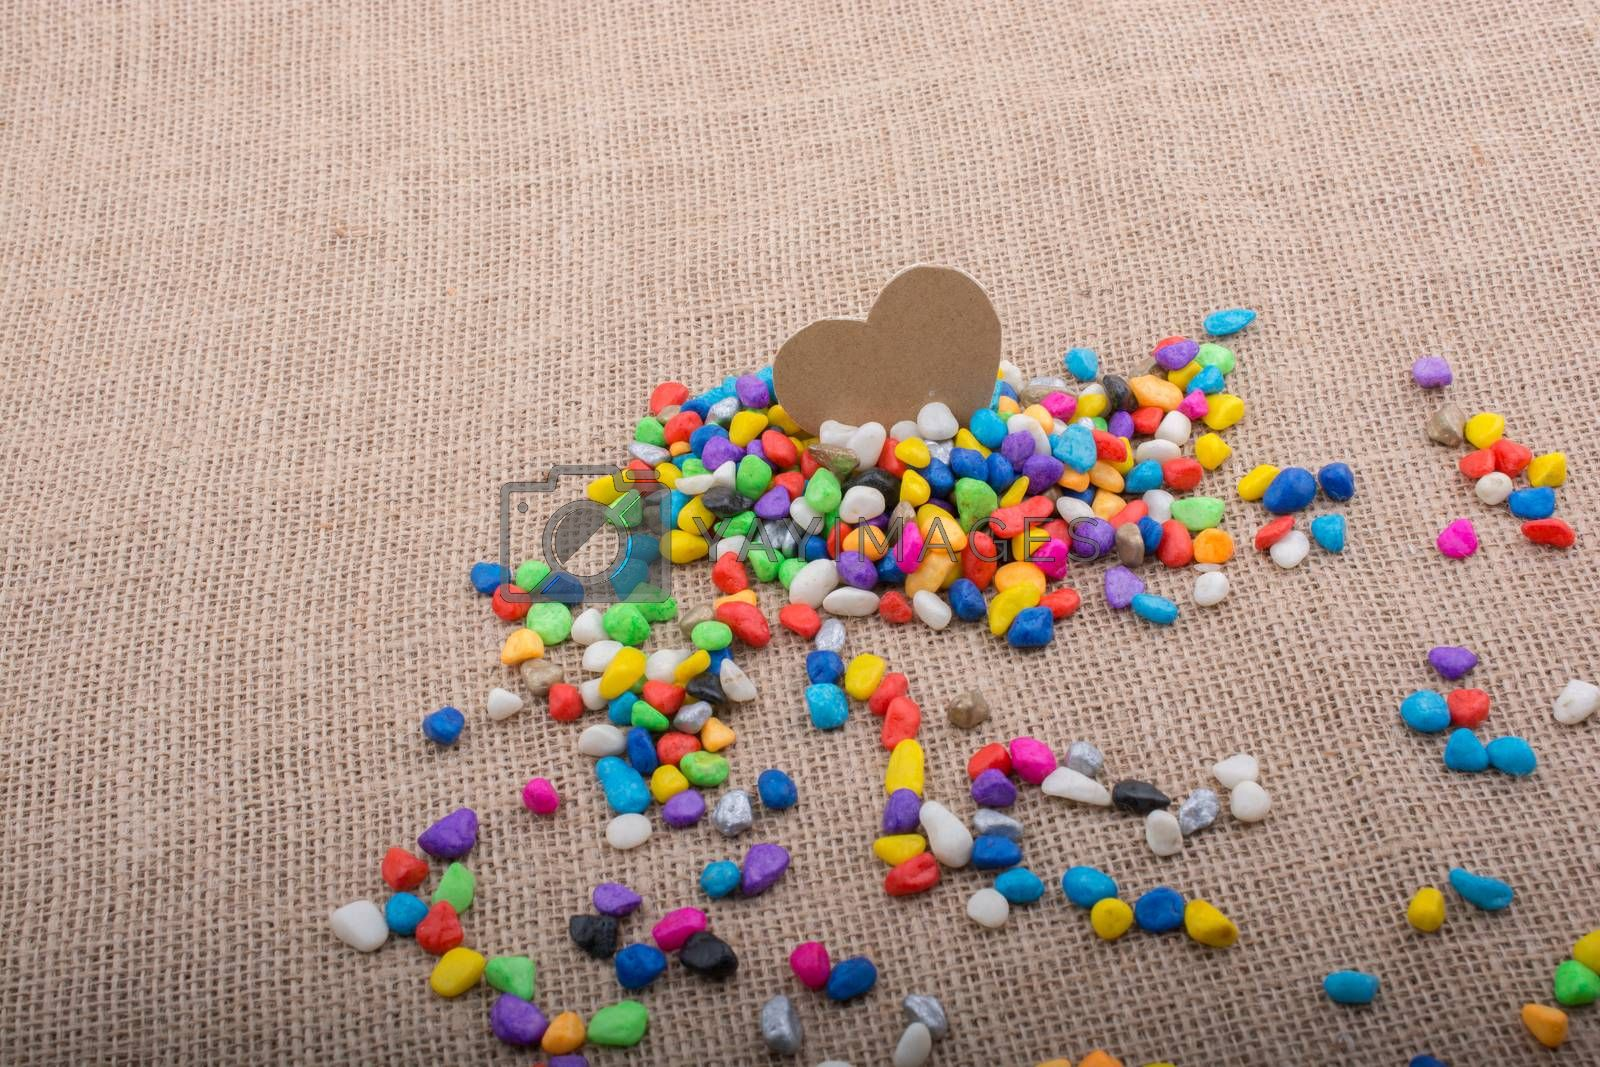 Paper heart amid colorful pebbles on canvas ground